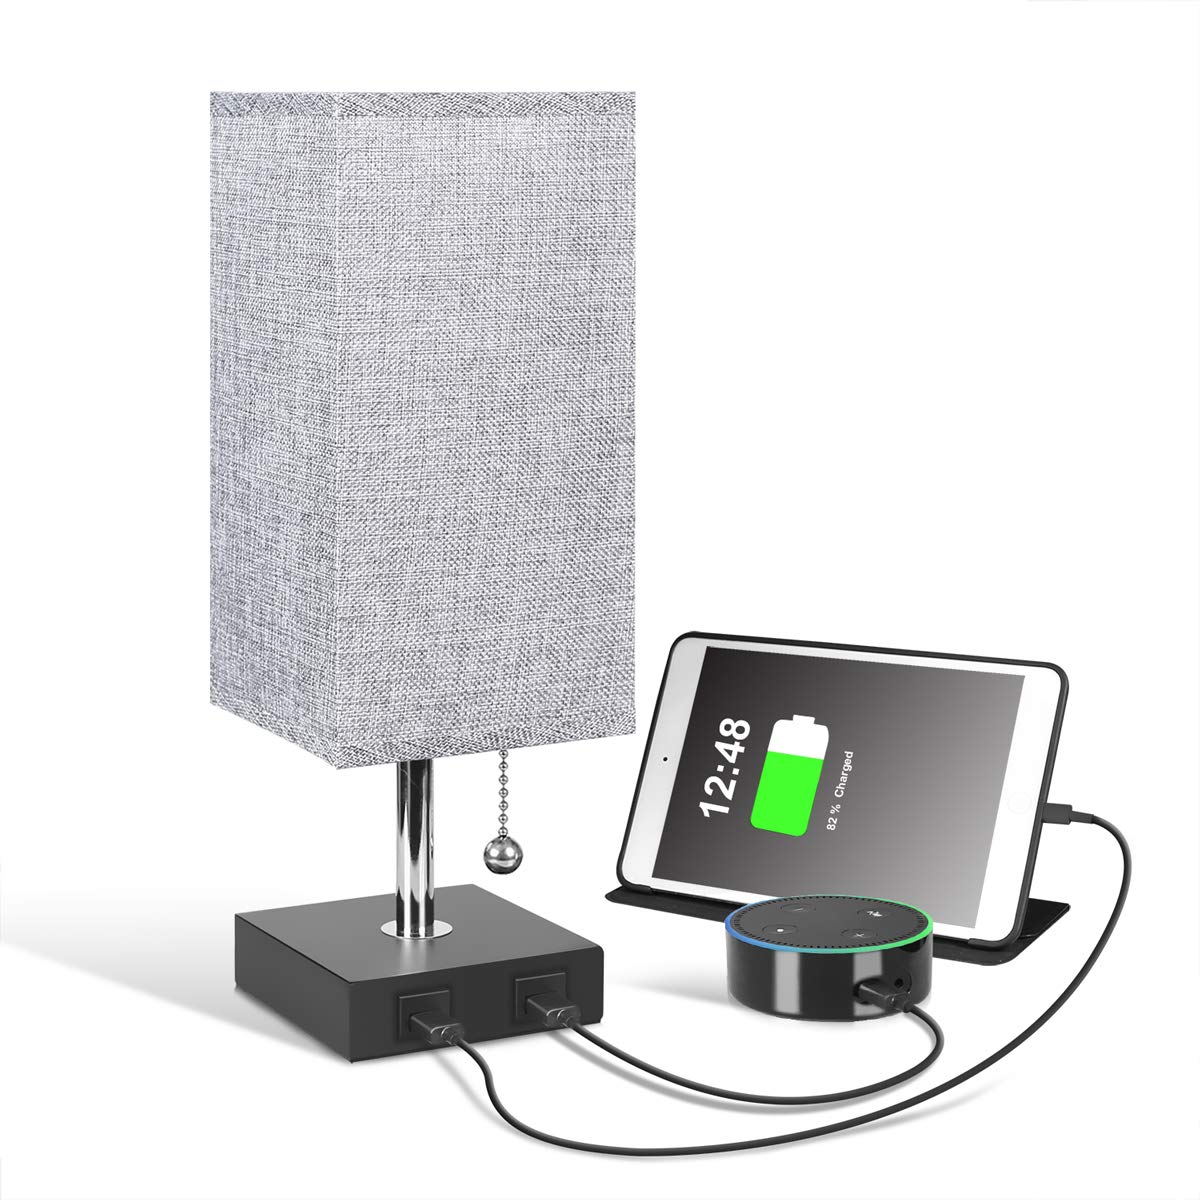 USB Bedside Table Lamp, Aooshine Modern Table & Desk Lamp, Solid Wood Nightstand Lamp with Grey Fabric Shade, Ambient Light and 2 Useful USB Charging Port Perfect for Bedroom, Living Room or Office